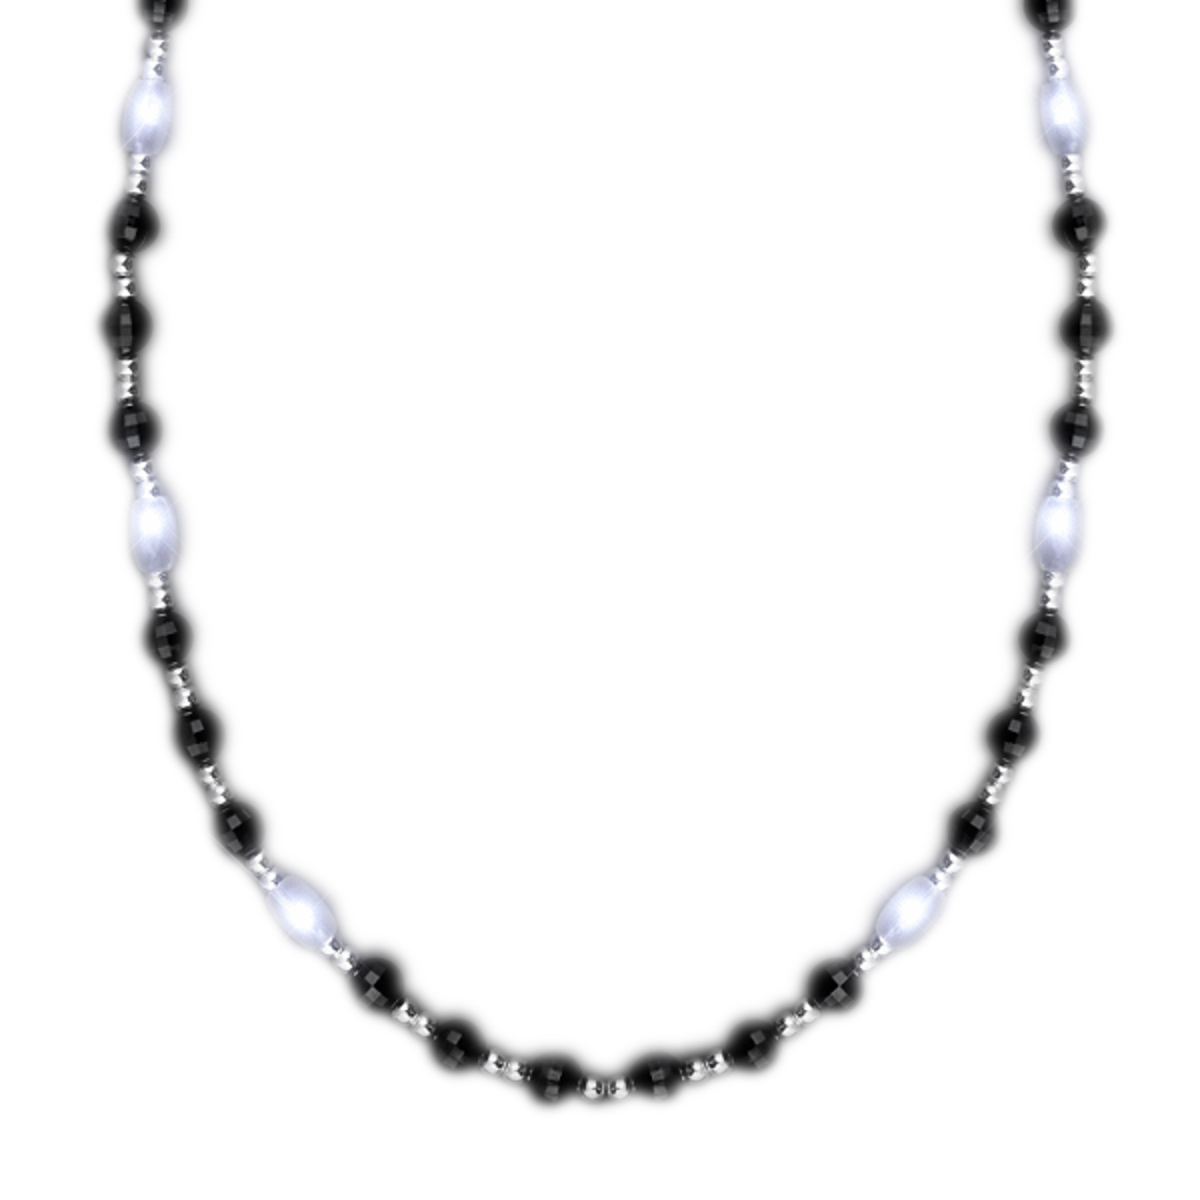 Classy Led Fancy Beads Black White And Silver Necklace